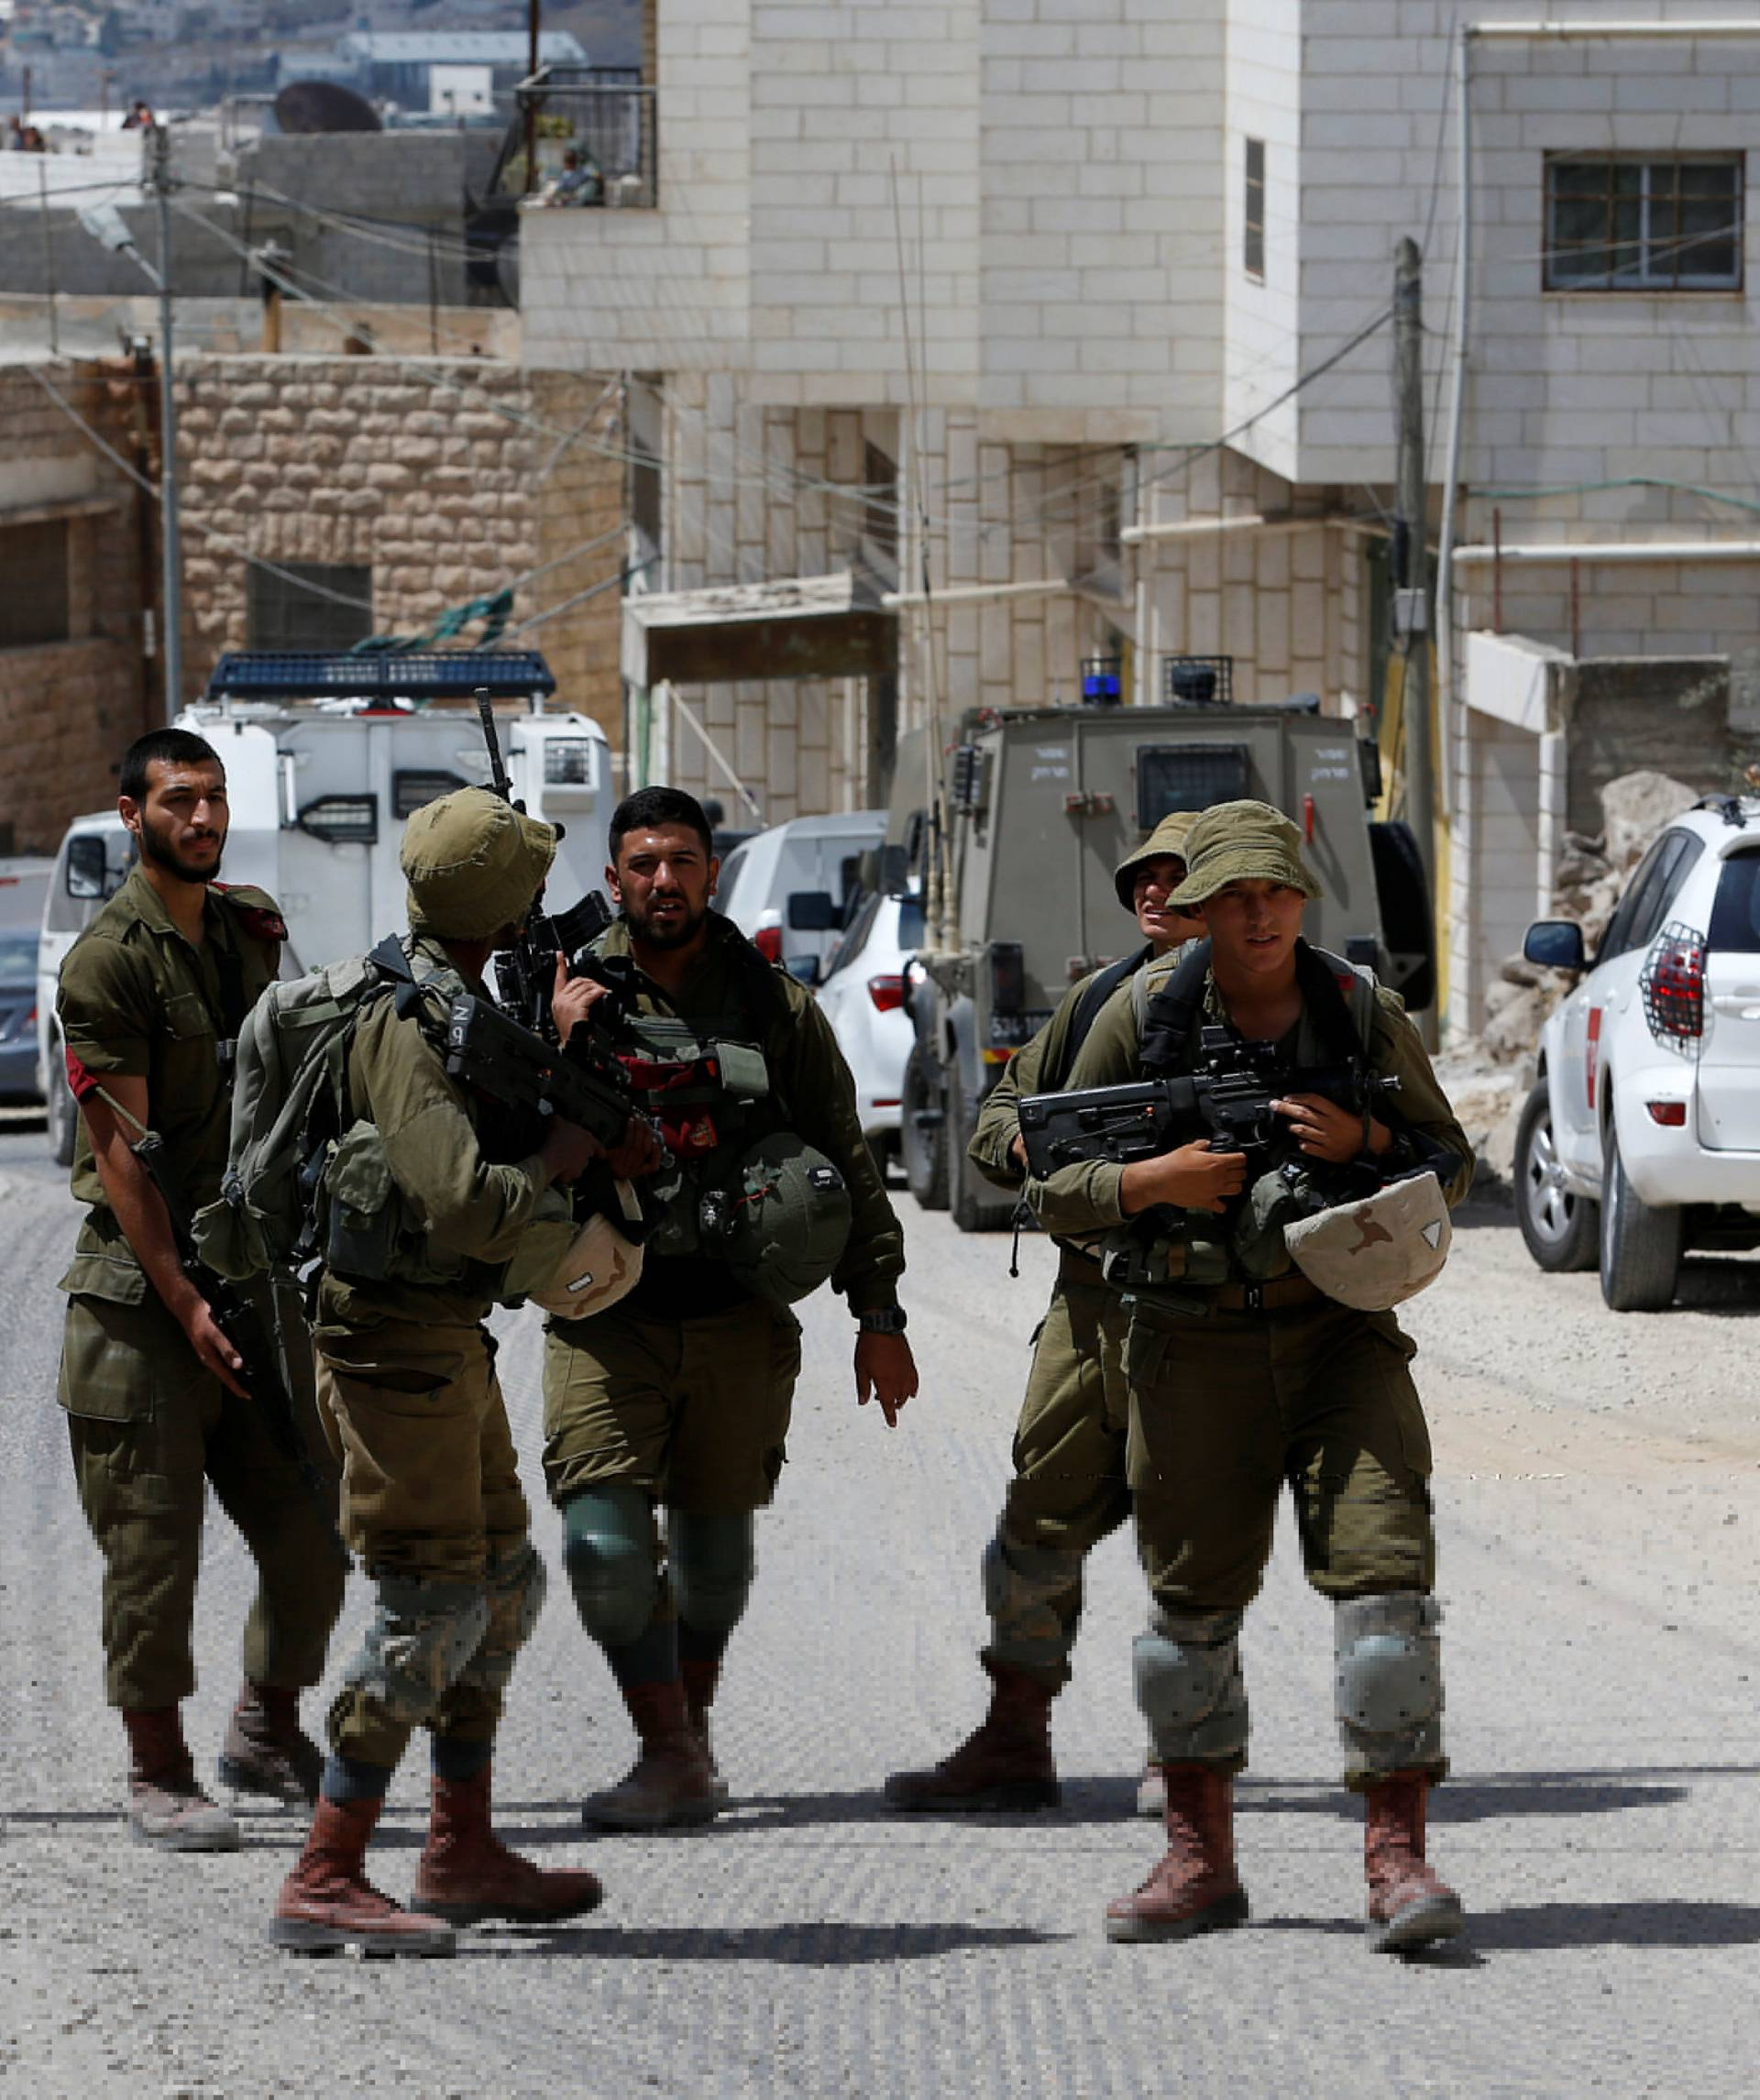 Israeli soldiers stand at the scene of attempted car ramming attack, in Hebron in the occupied West Bank